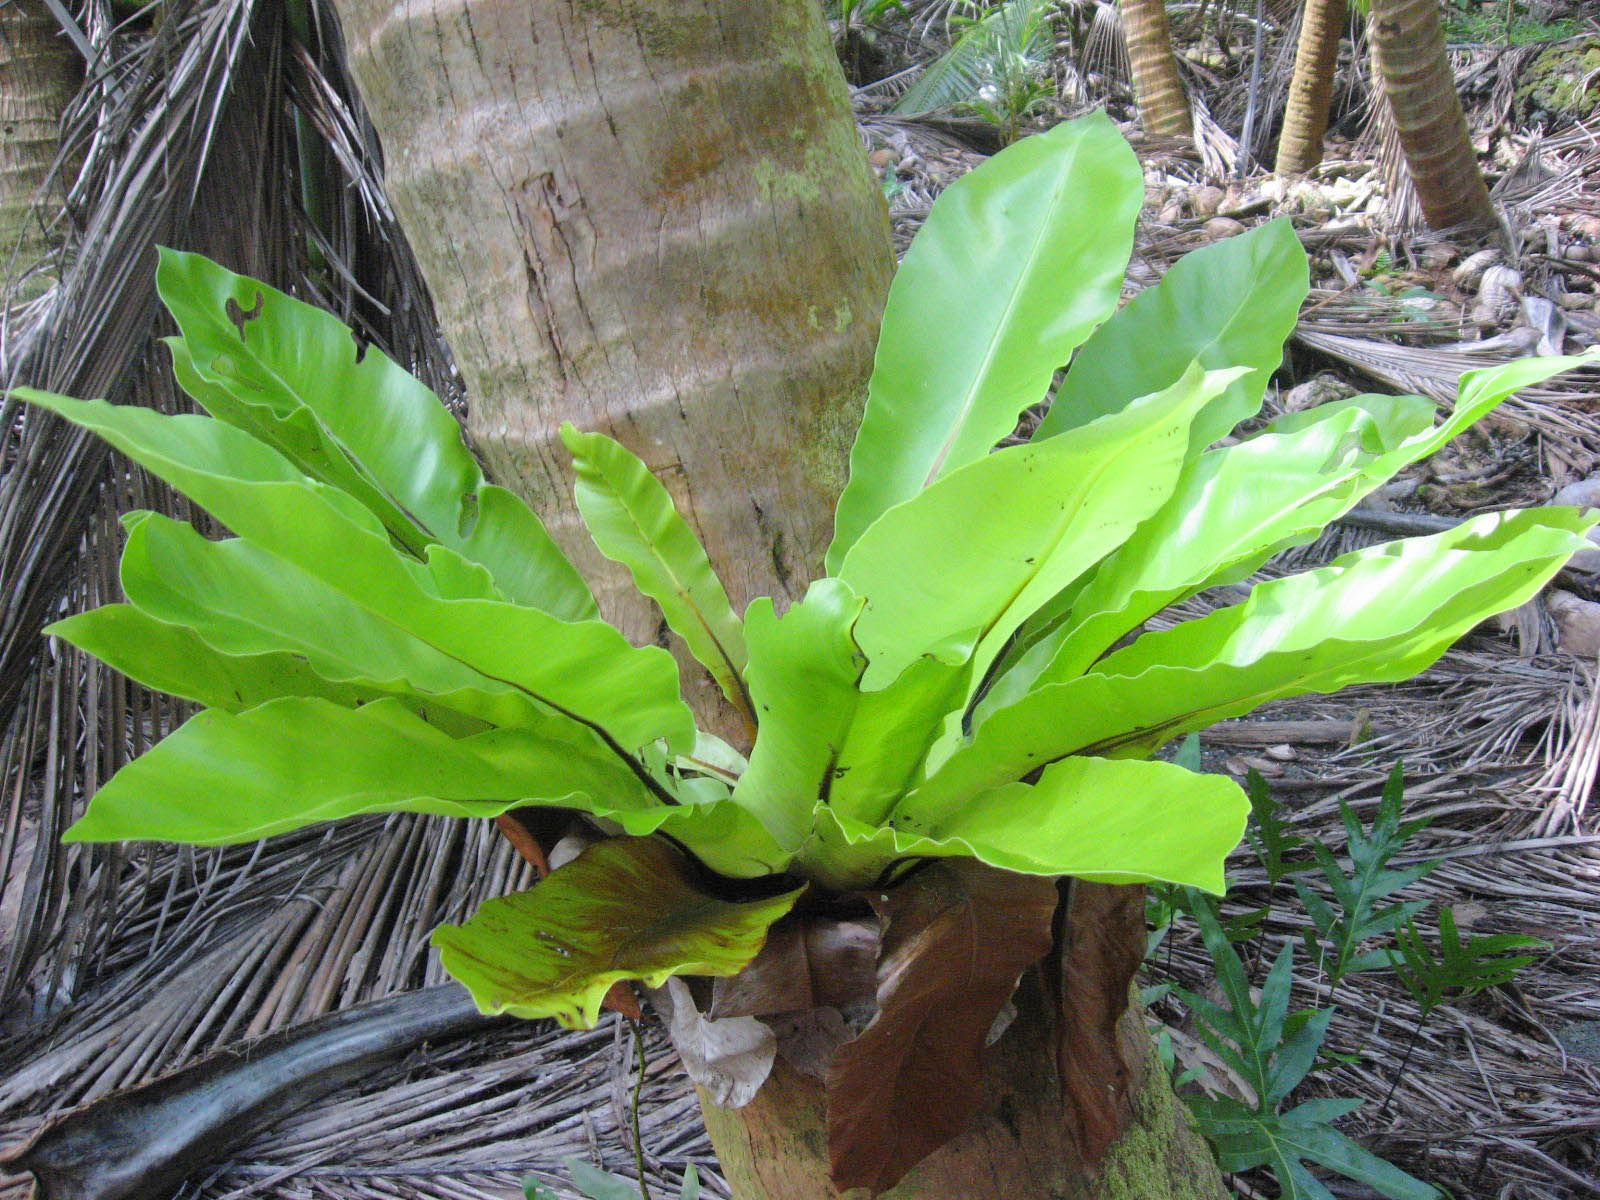 Bird's nest fern found high on top of a coconut palm tree